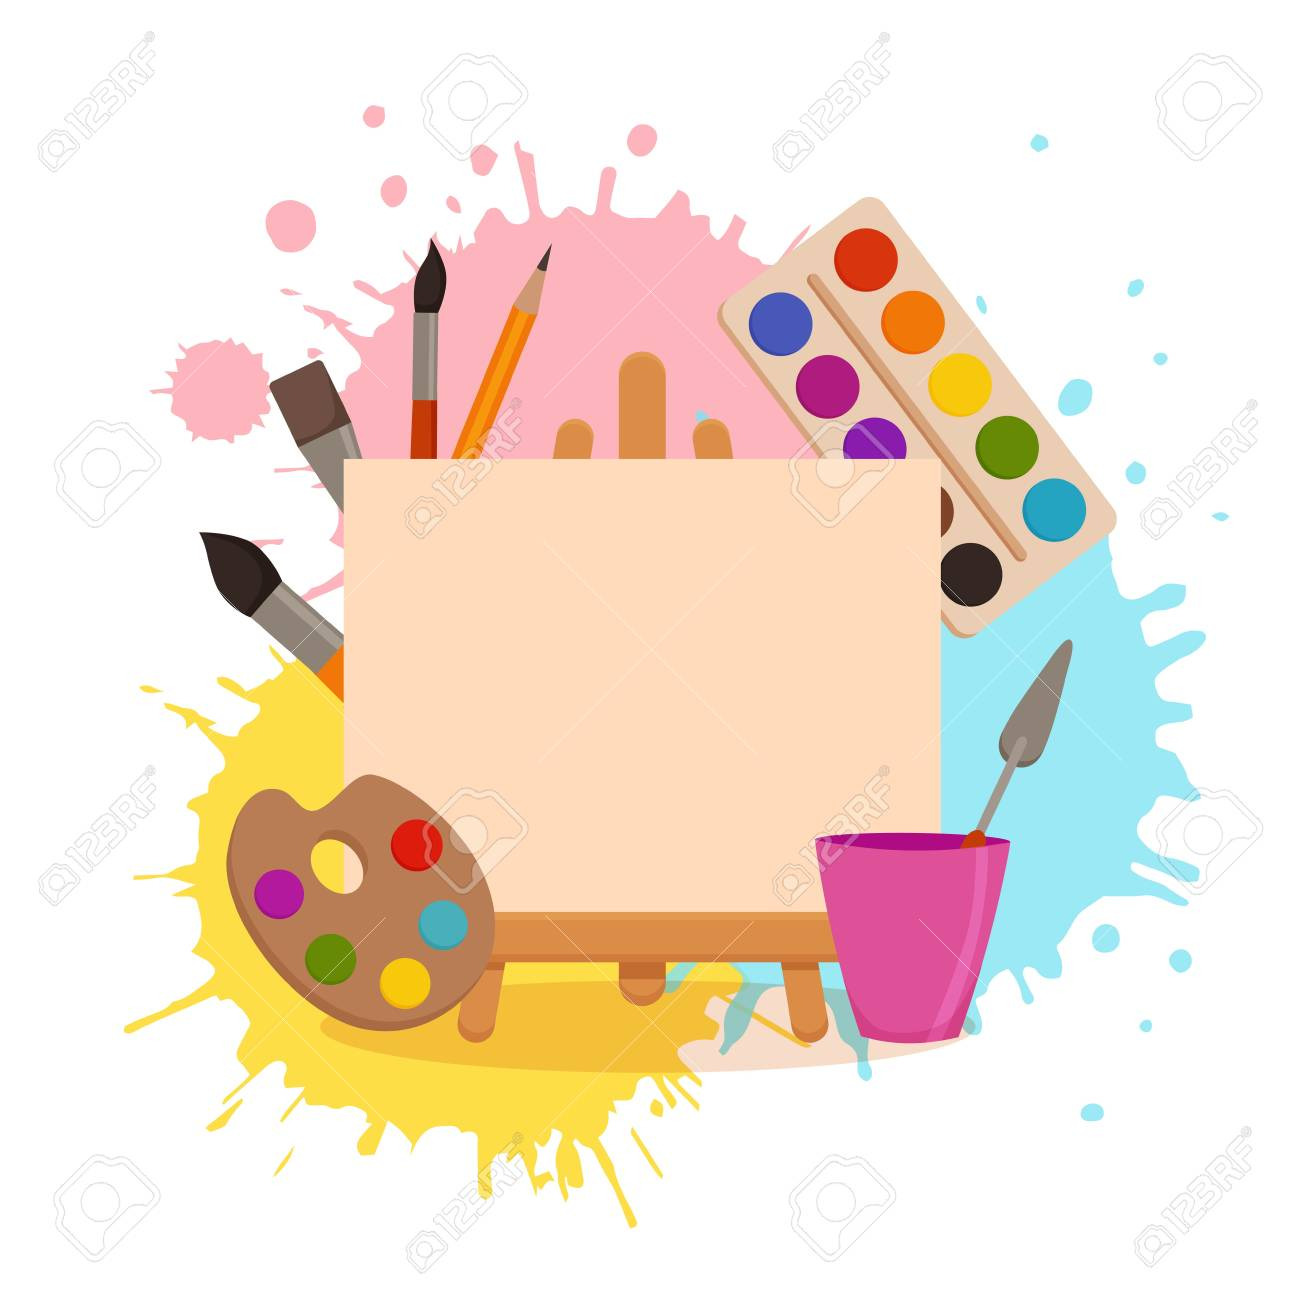 Colorful Background Drawing Designs